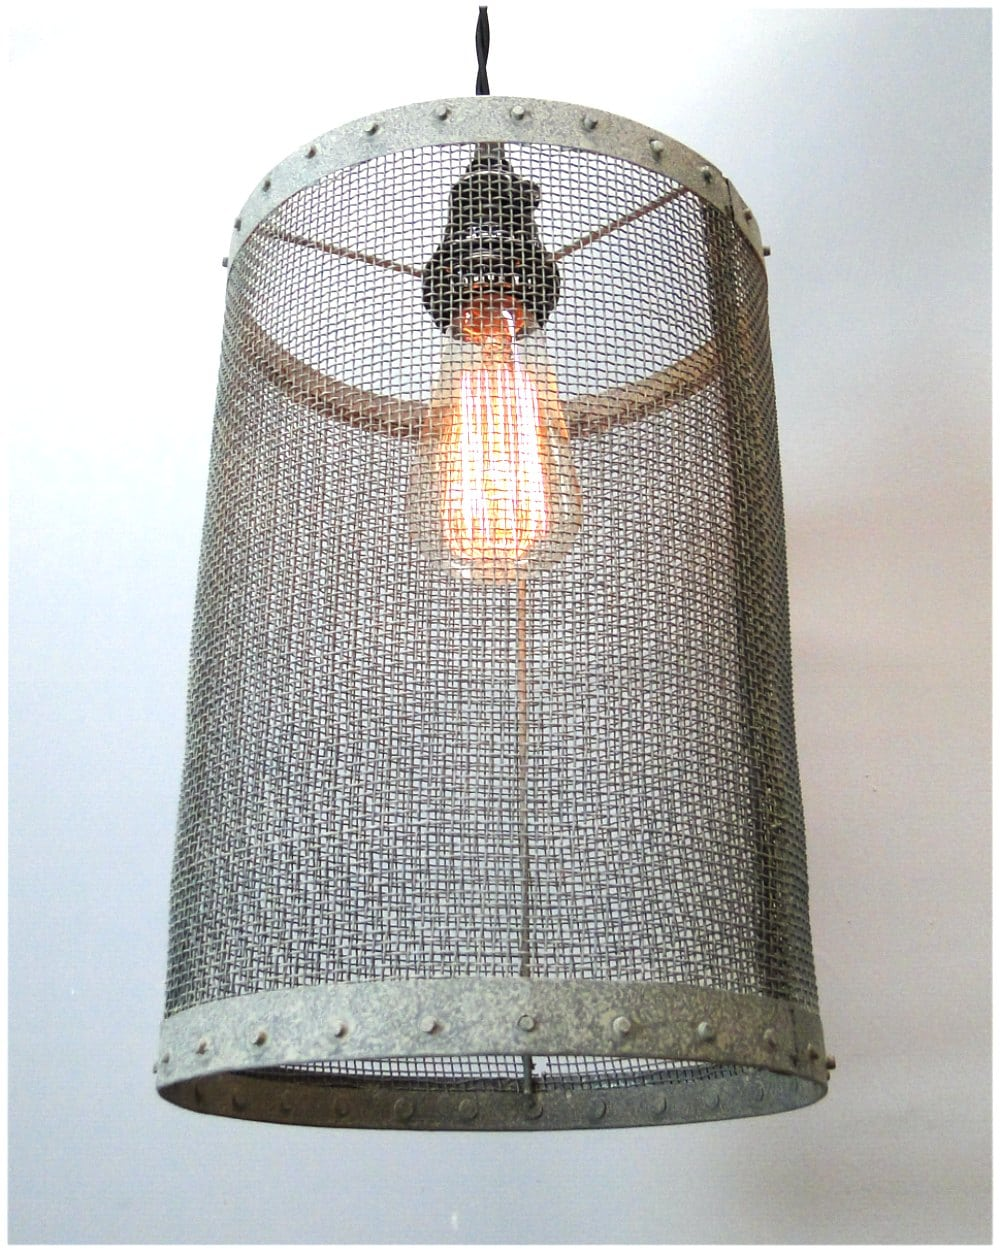 Mesh Wire Barrel Pendant Light Fixture Aged Galvanized Look Old Wiring A New To Fashioned Style Round